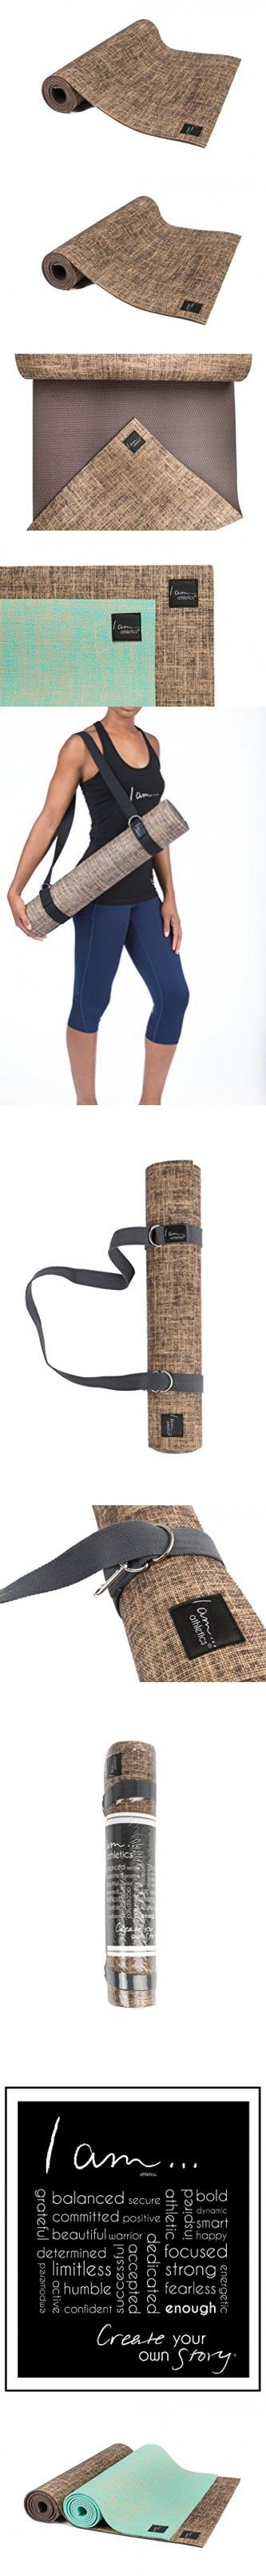 I am... Athletics: Natural Jute Exercise/Yoga Mat - Eco-Friendly, Durable, Extra Long with Carry Strap (Dark Brown)